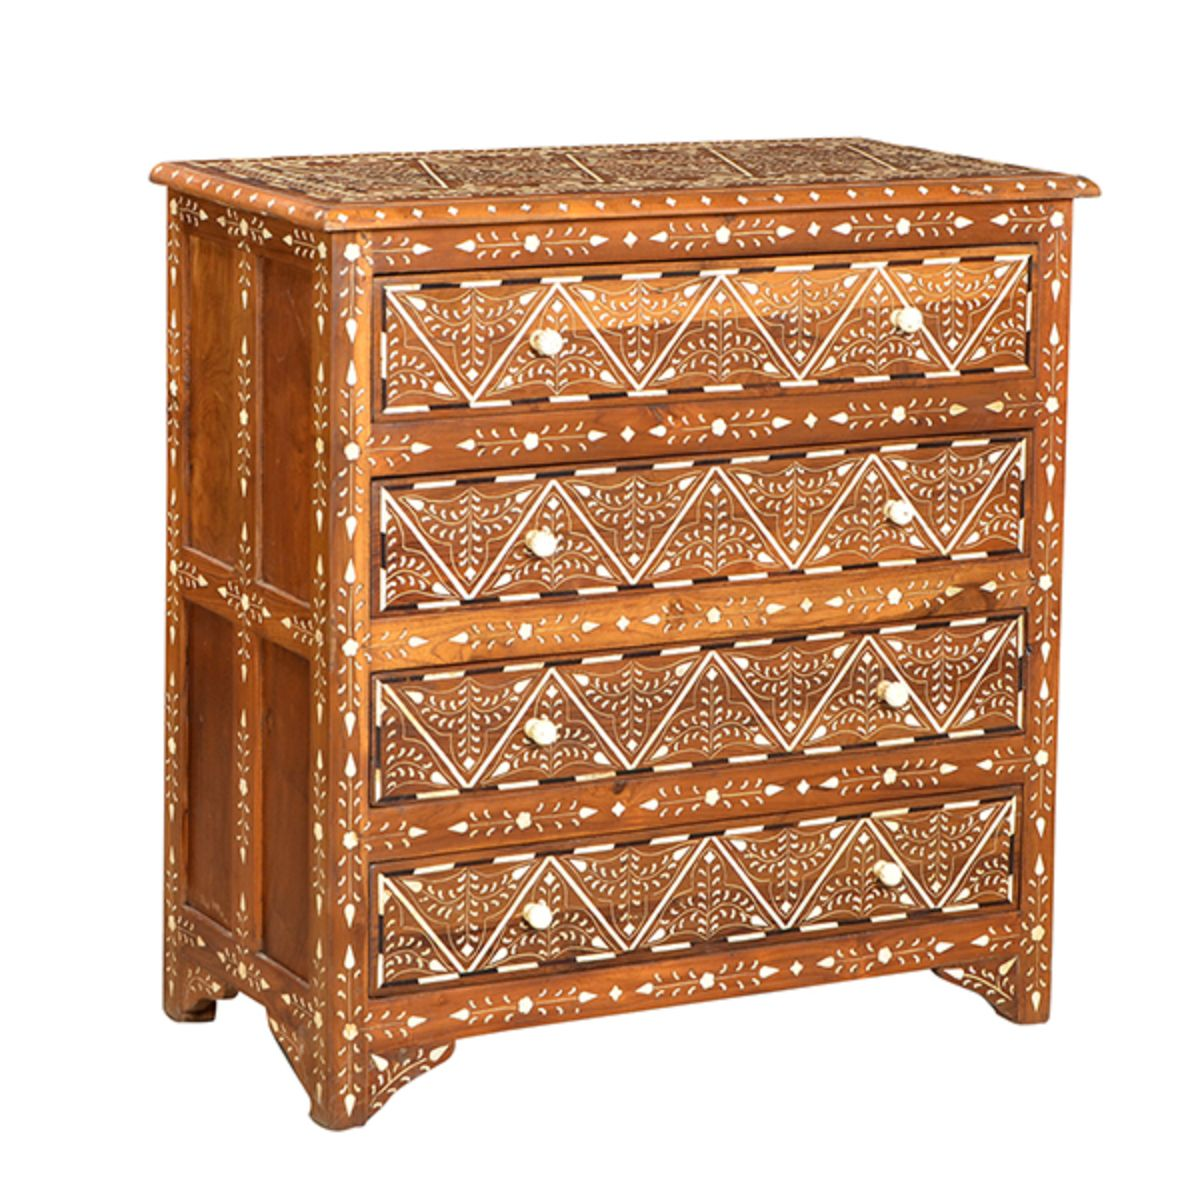 Teak wood four drawer dresser with intricate bone inlay work and hardware.  Hand waxed finish.